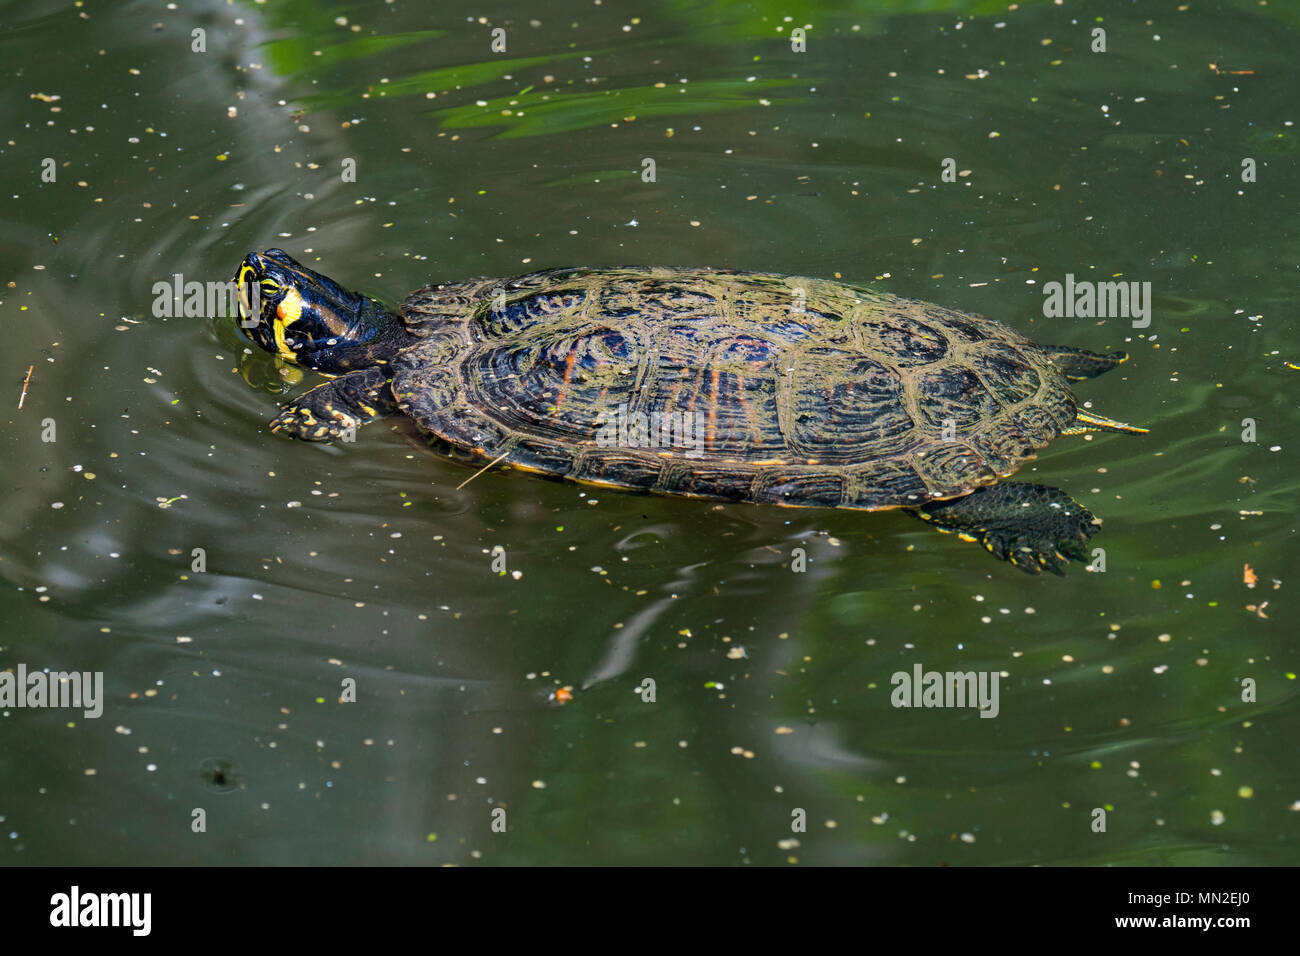 Yellow-bellied slider (Trachemys scripta scripta), land and water turtle native to the southeastern United States swimming in pond - Stock Image